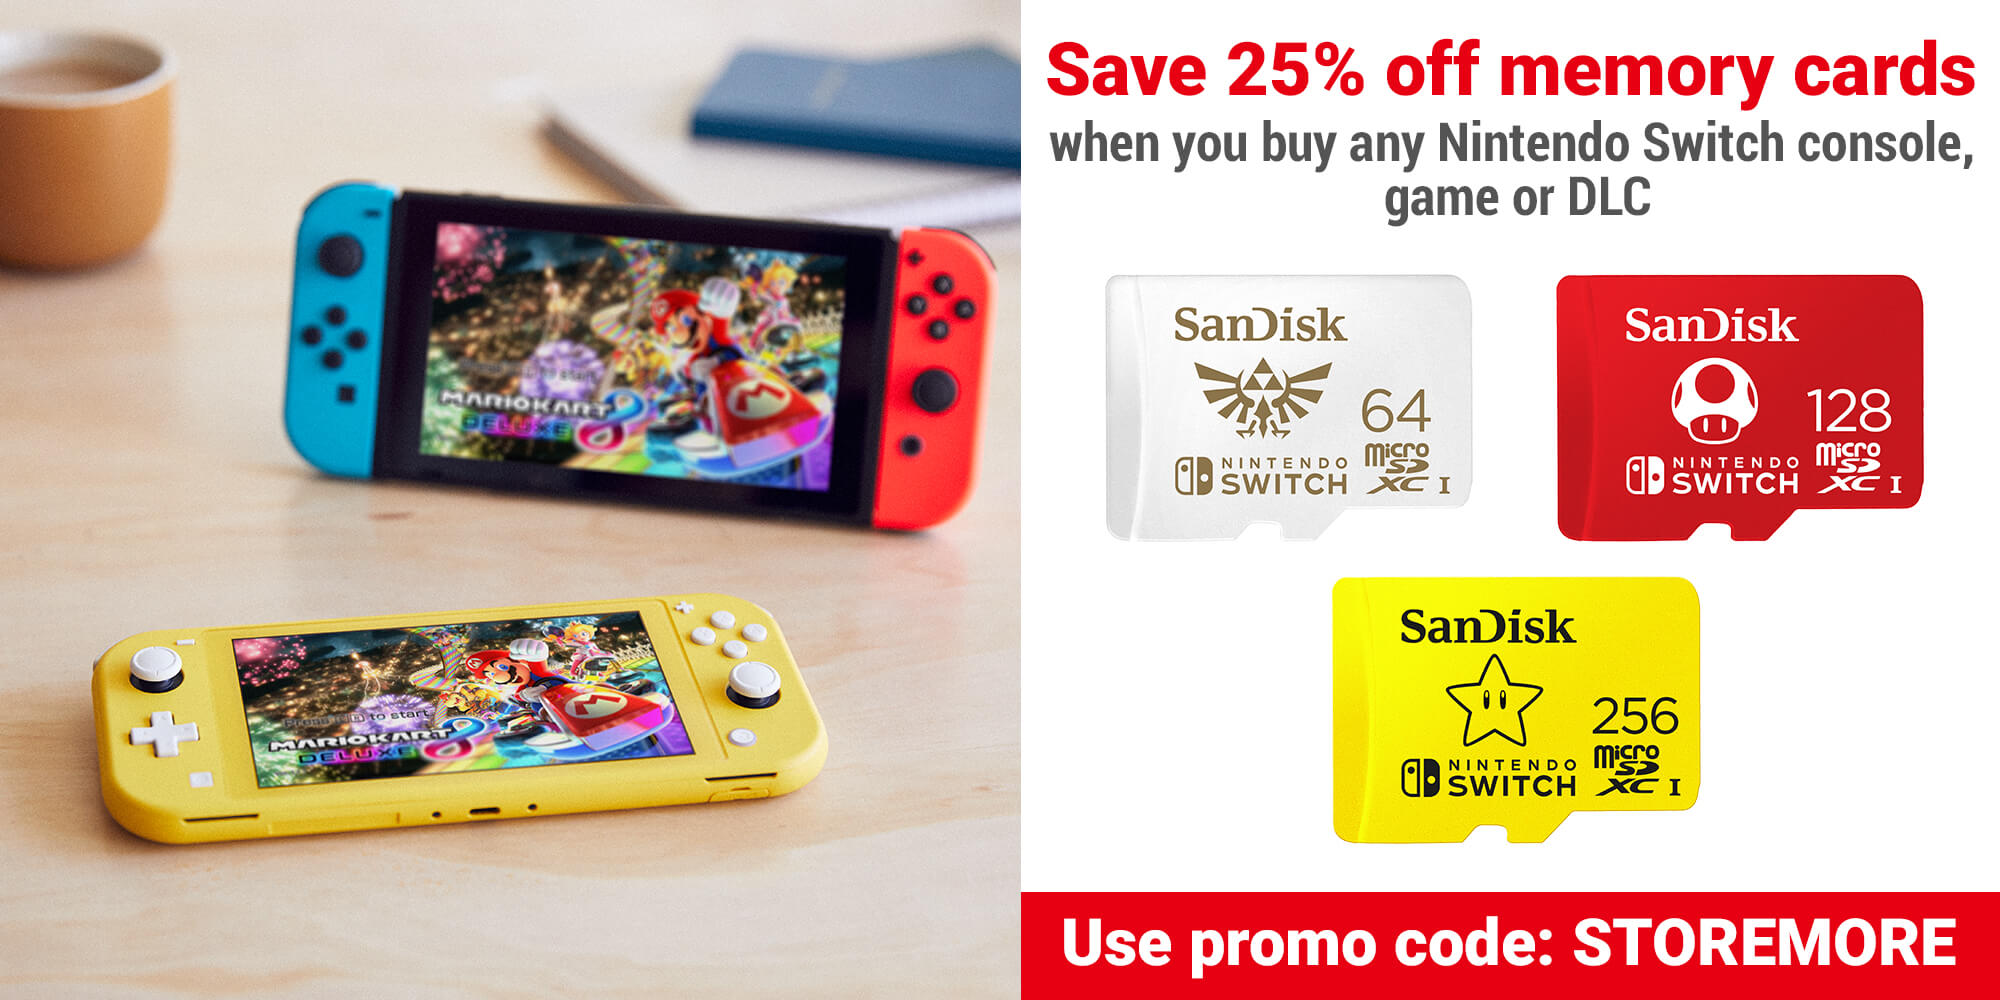 Save 25% off memory cards